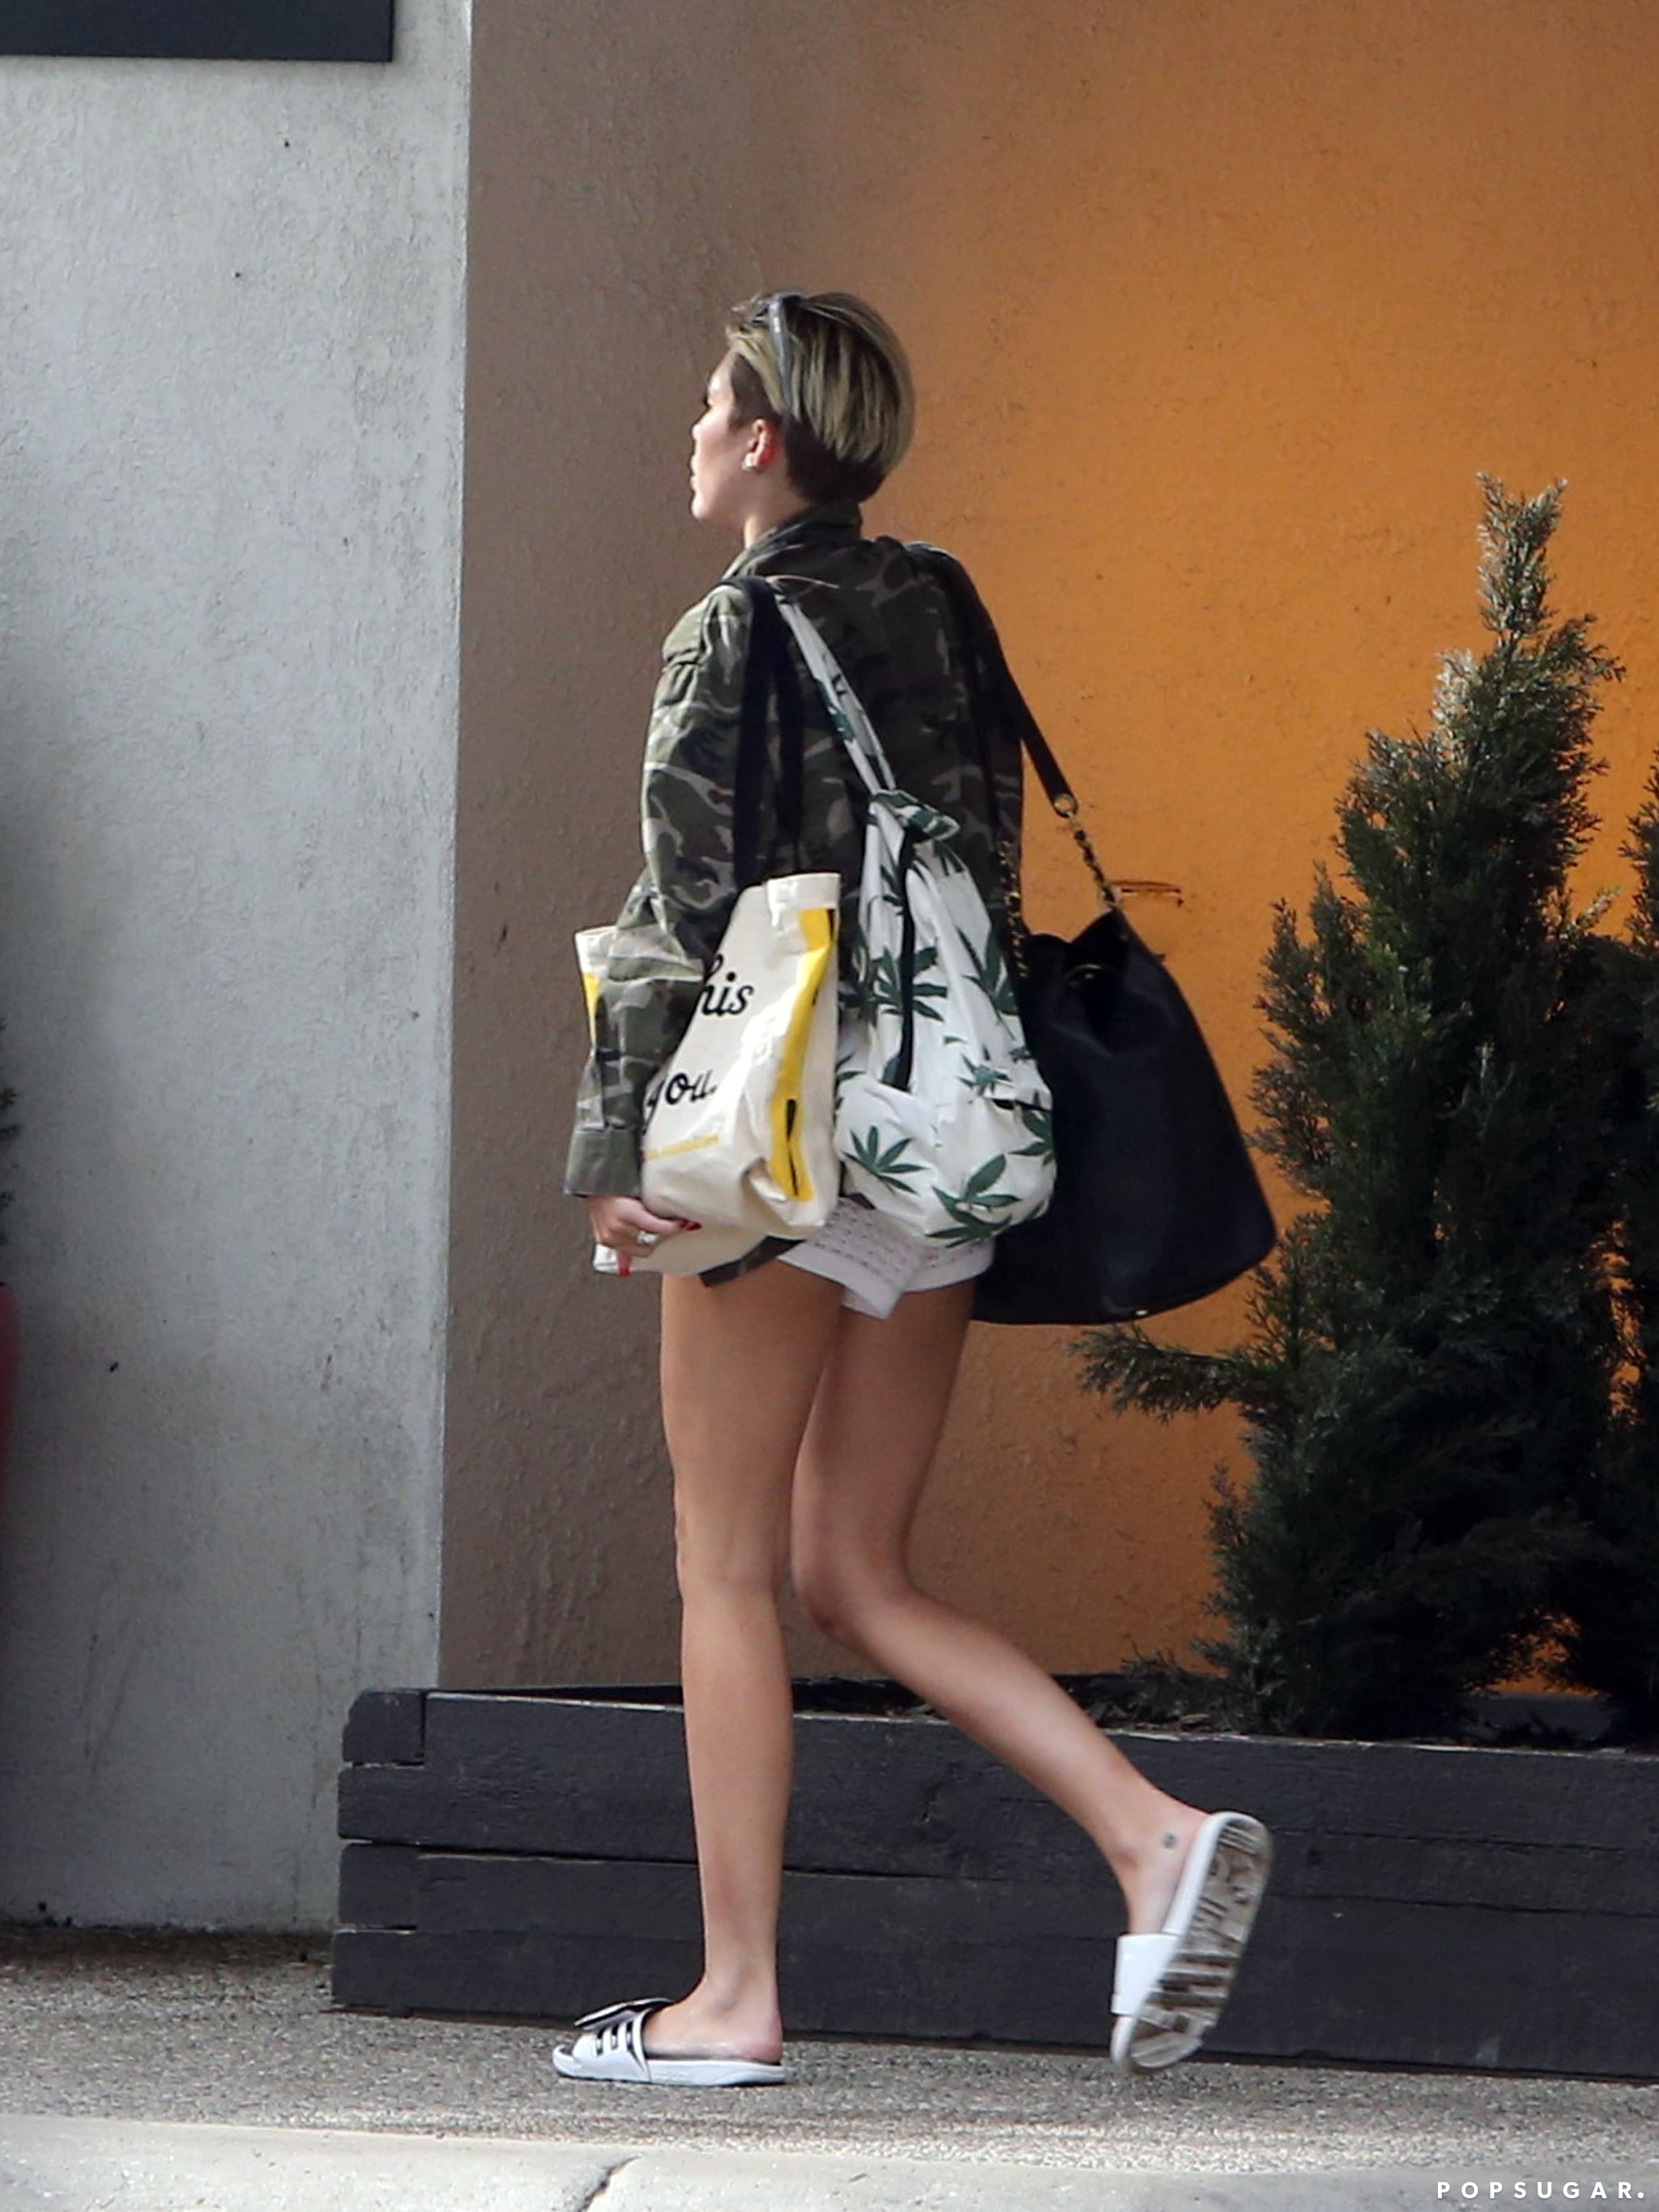 Miley Cyrus carried bags into her hotel.